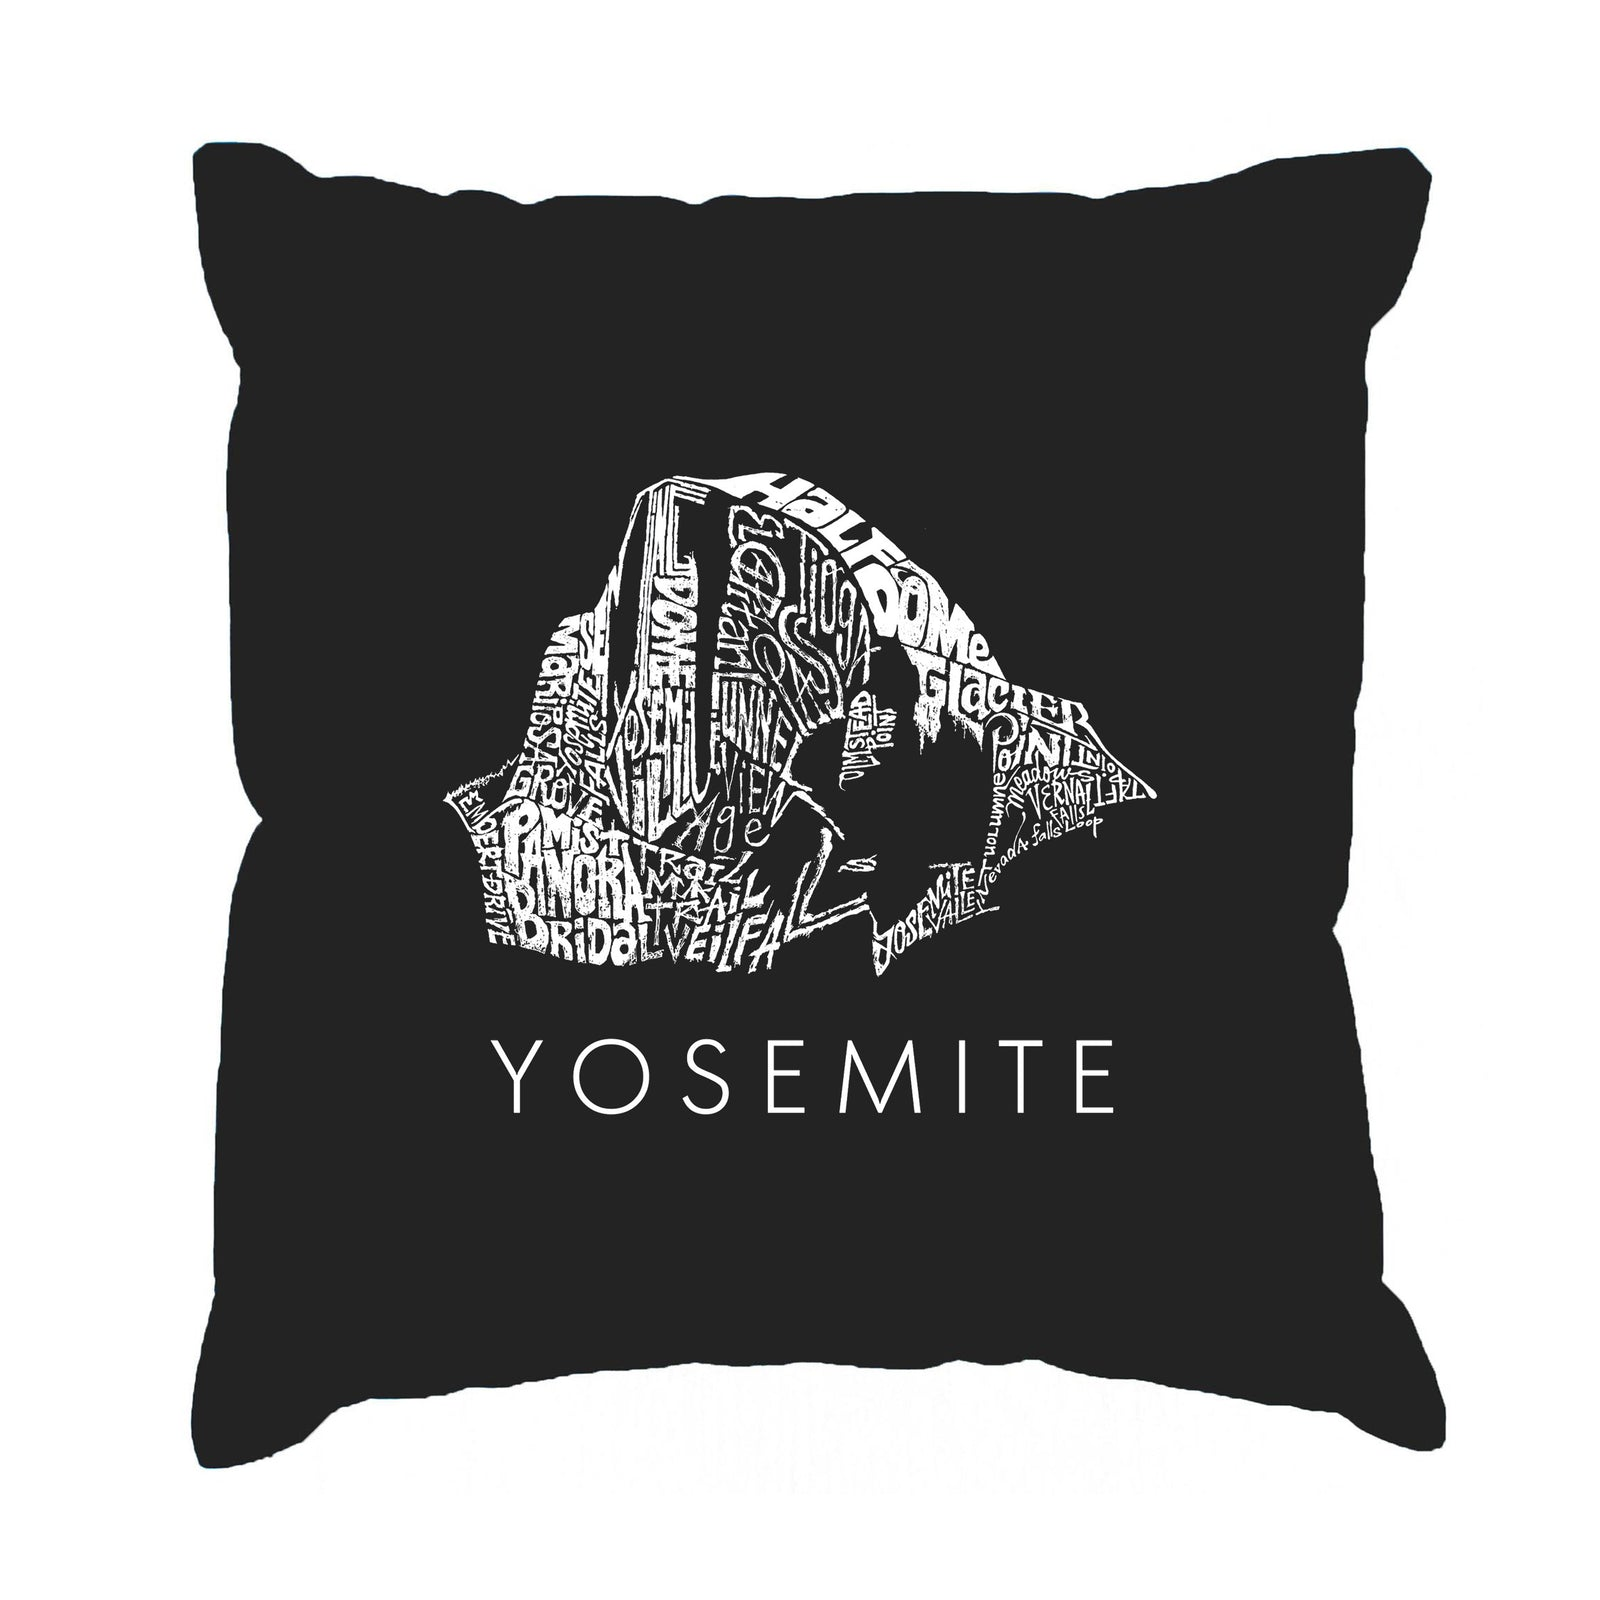 Los Angeles Pop Art Throw Pillow Cover - Yosemite